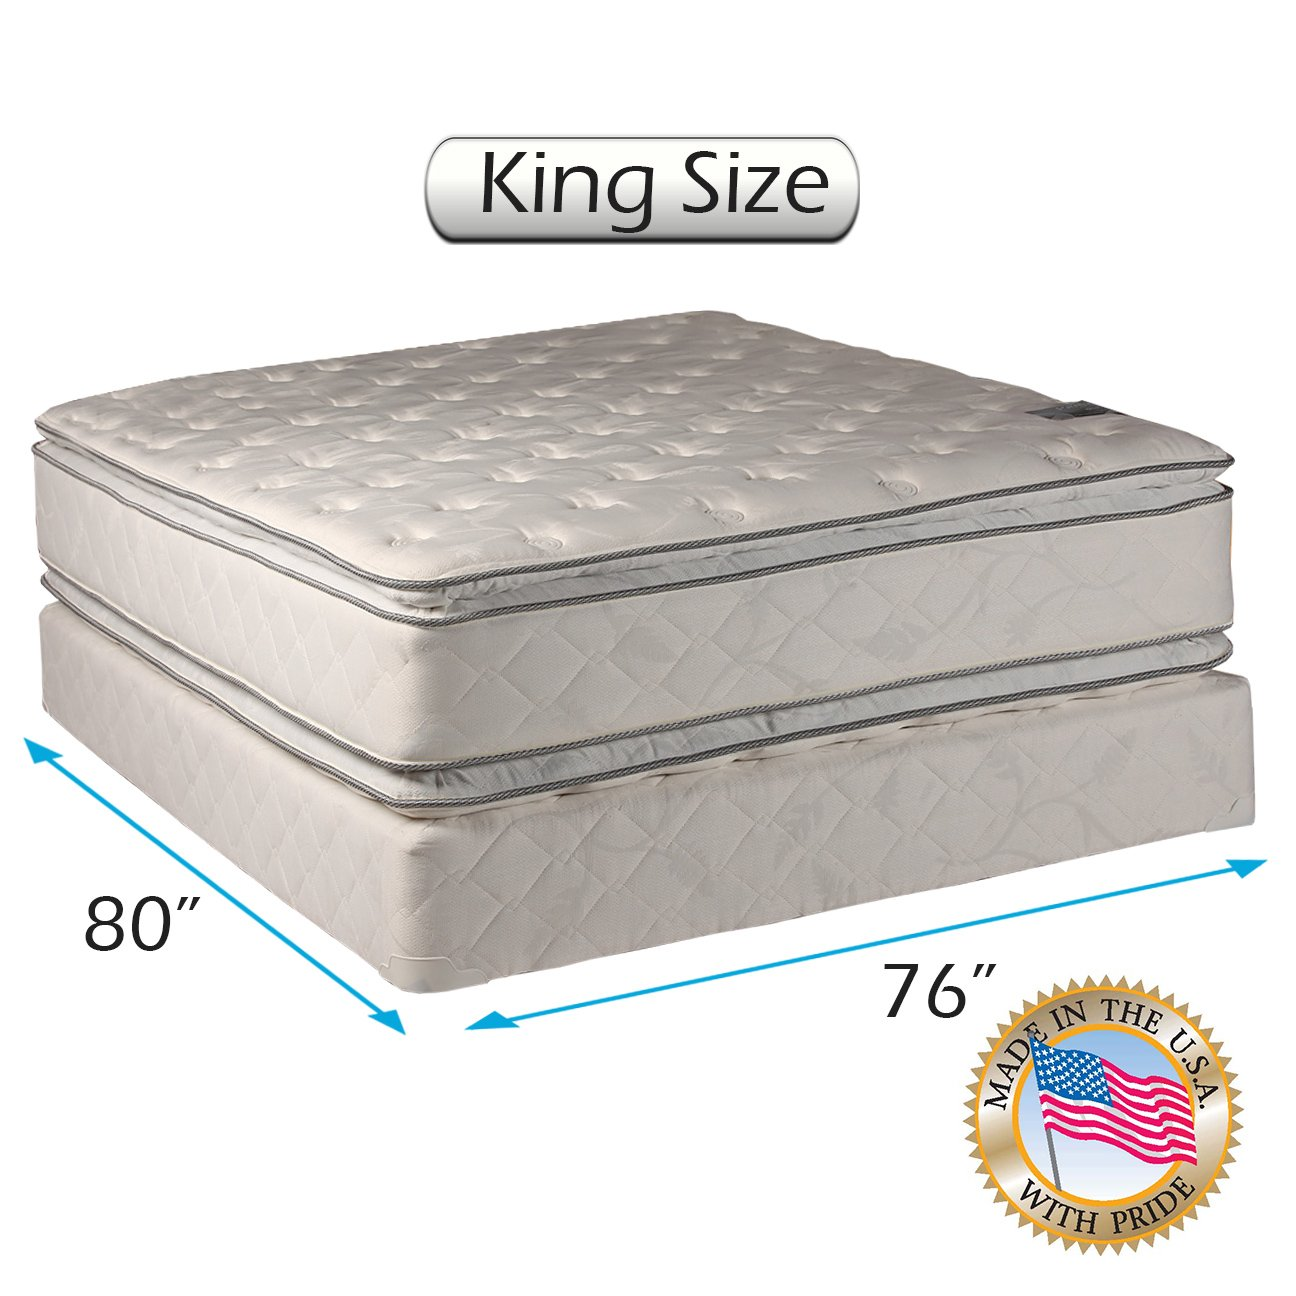 Dream Solutions Pillow Top Mattress and Box Spring Set (King) Double-Sided Sleep System with Enhanced Cushion Support- Fully Assembled, Great for your Back, longlasting Comfort by Dream Solutions USA